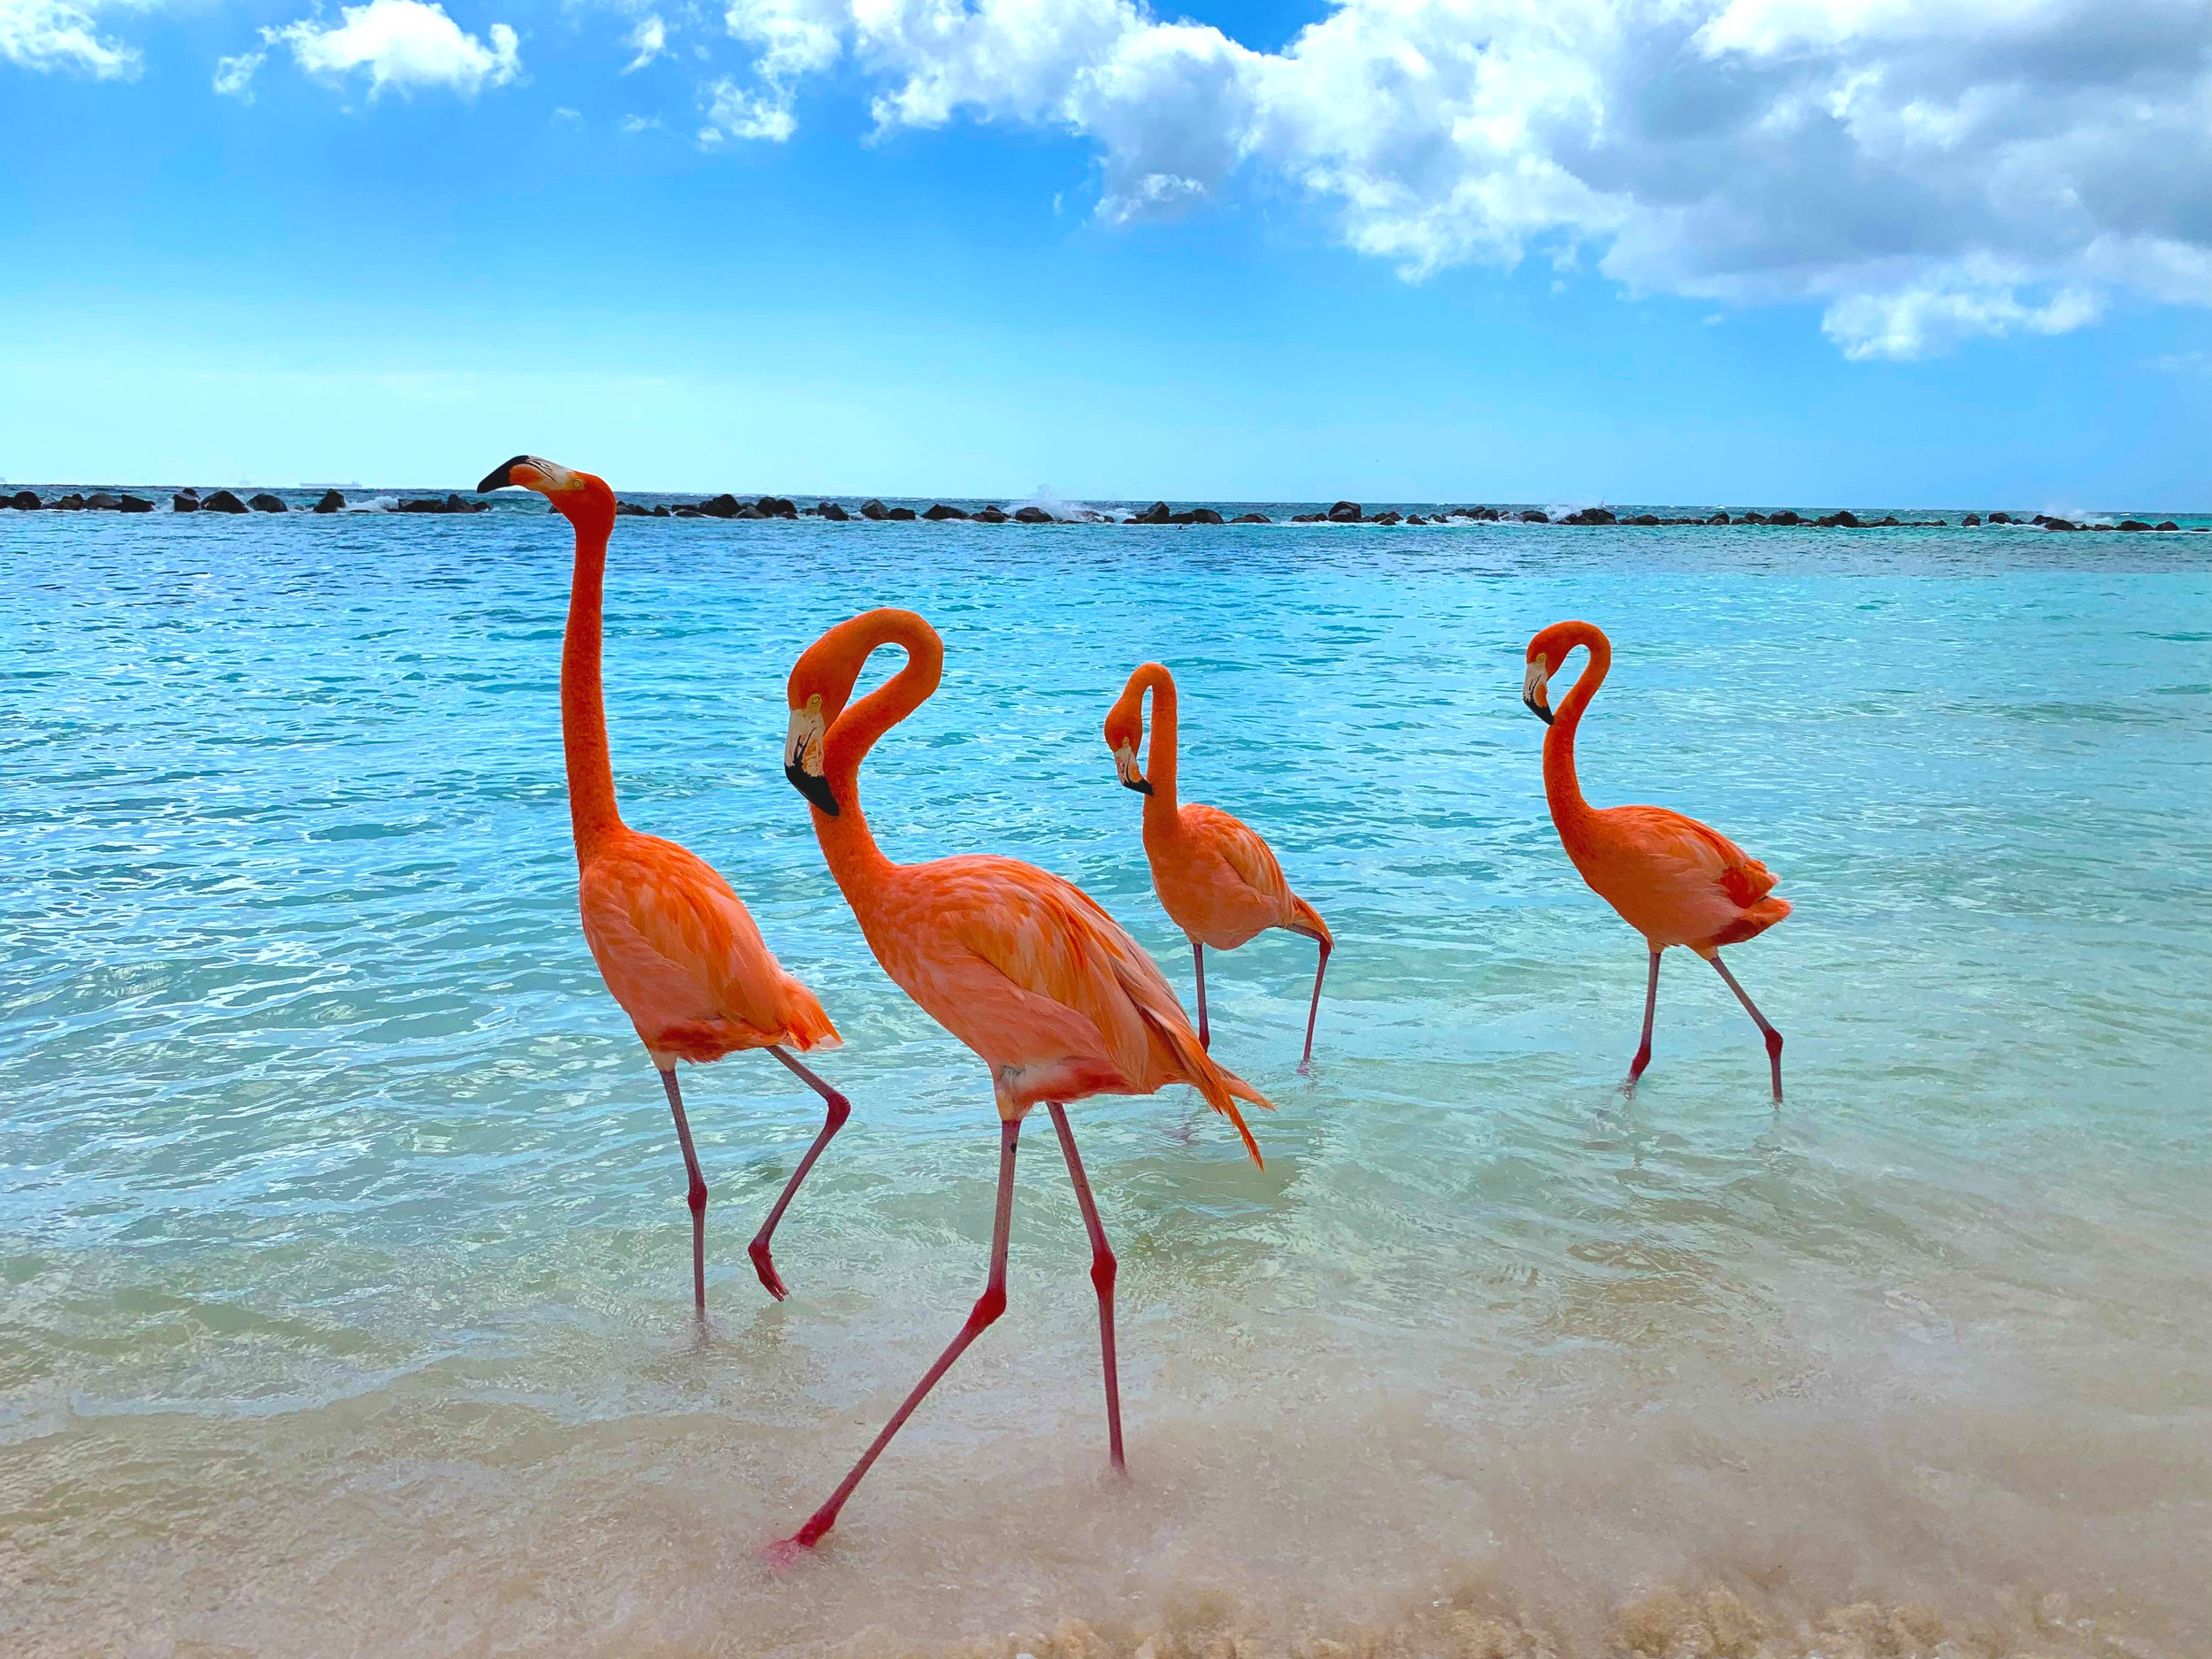 Flamingos on Flamingo Beach - Renaissance Island